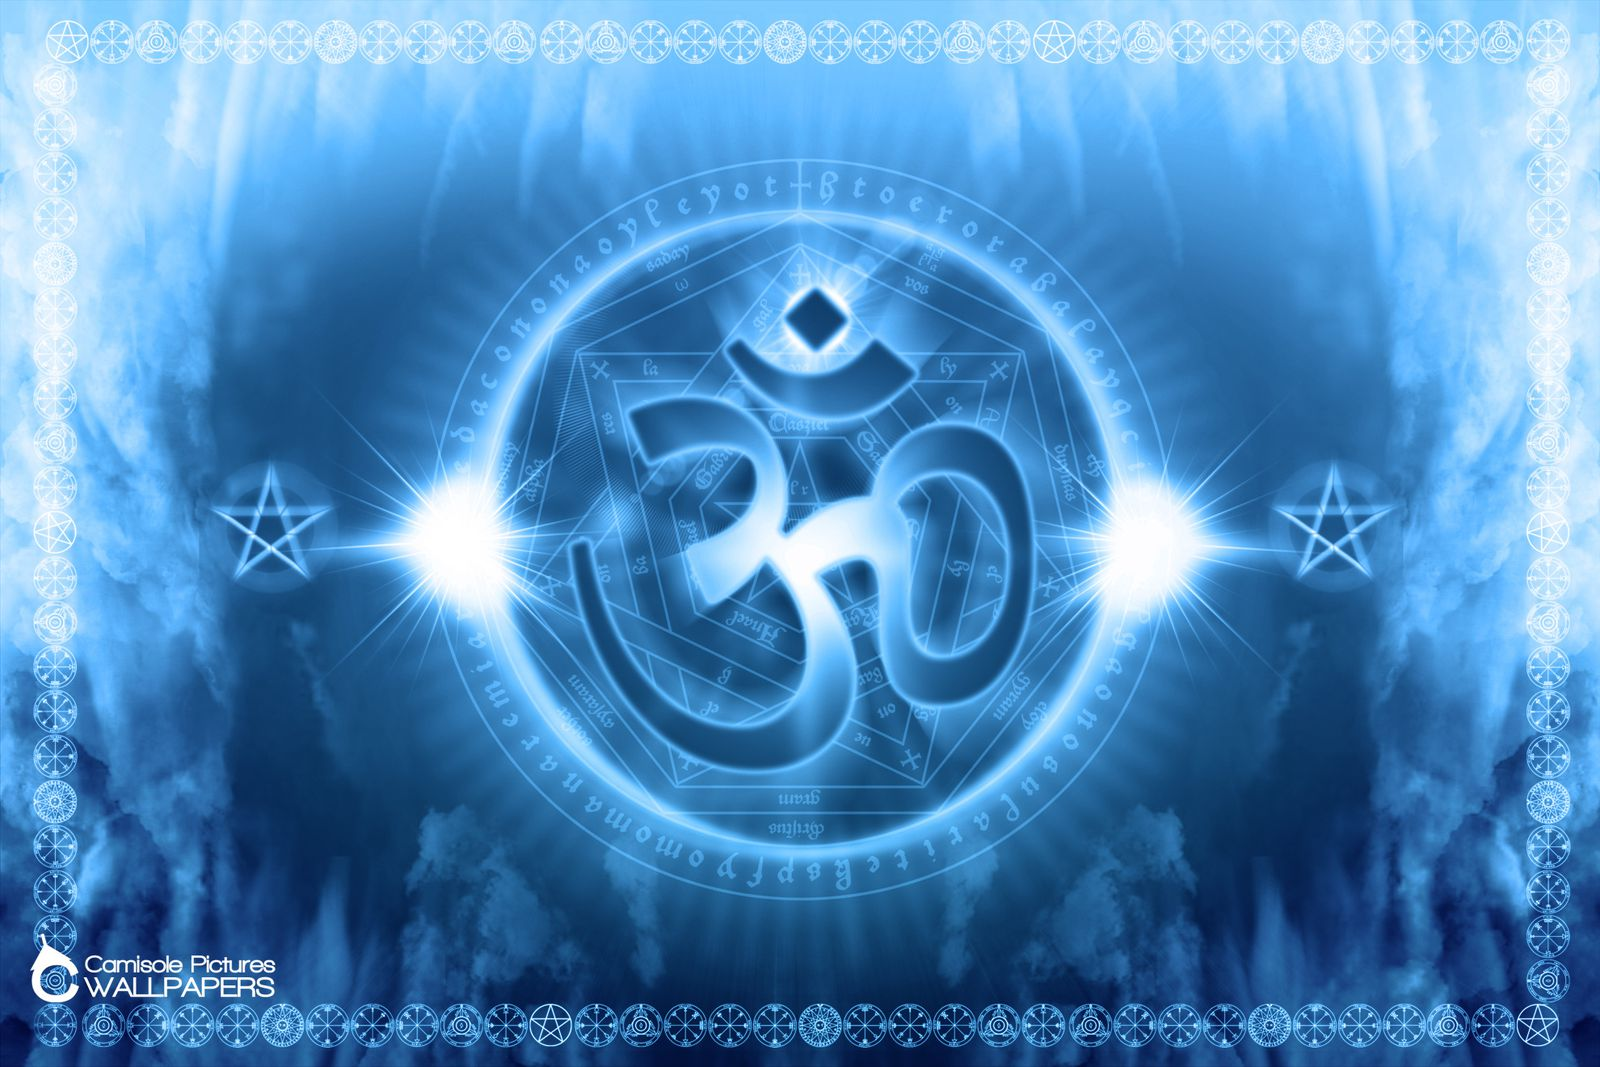 Pin Aum Wallpapers Om Pictures Hindu Symbols Hinduism